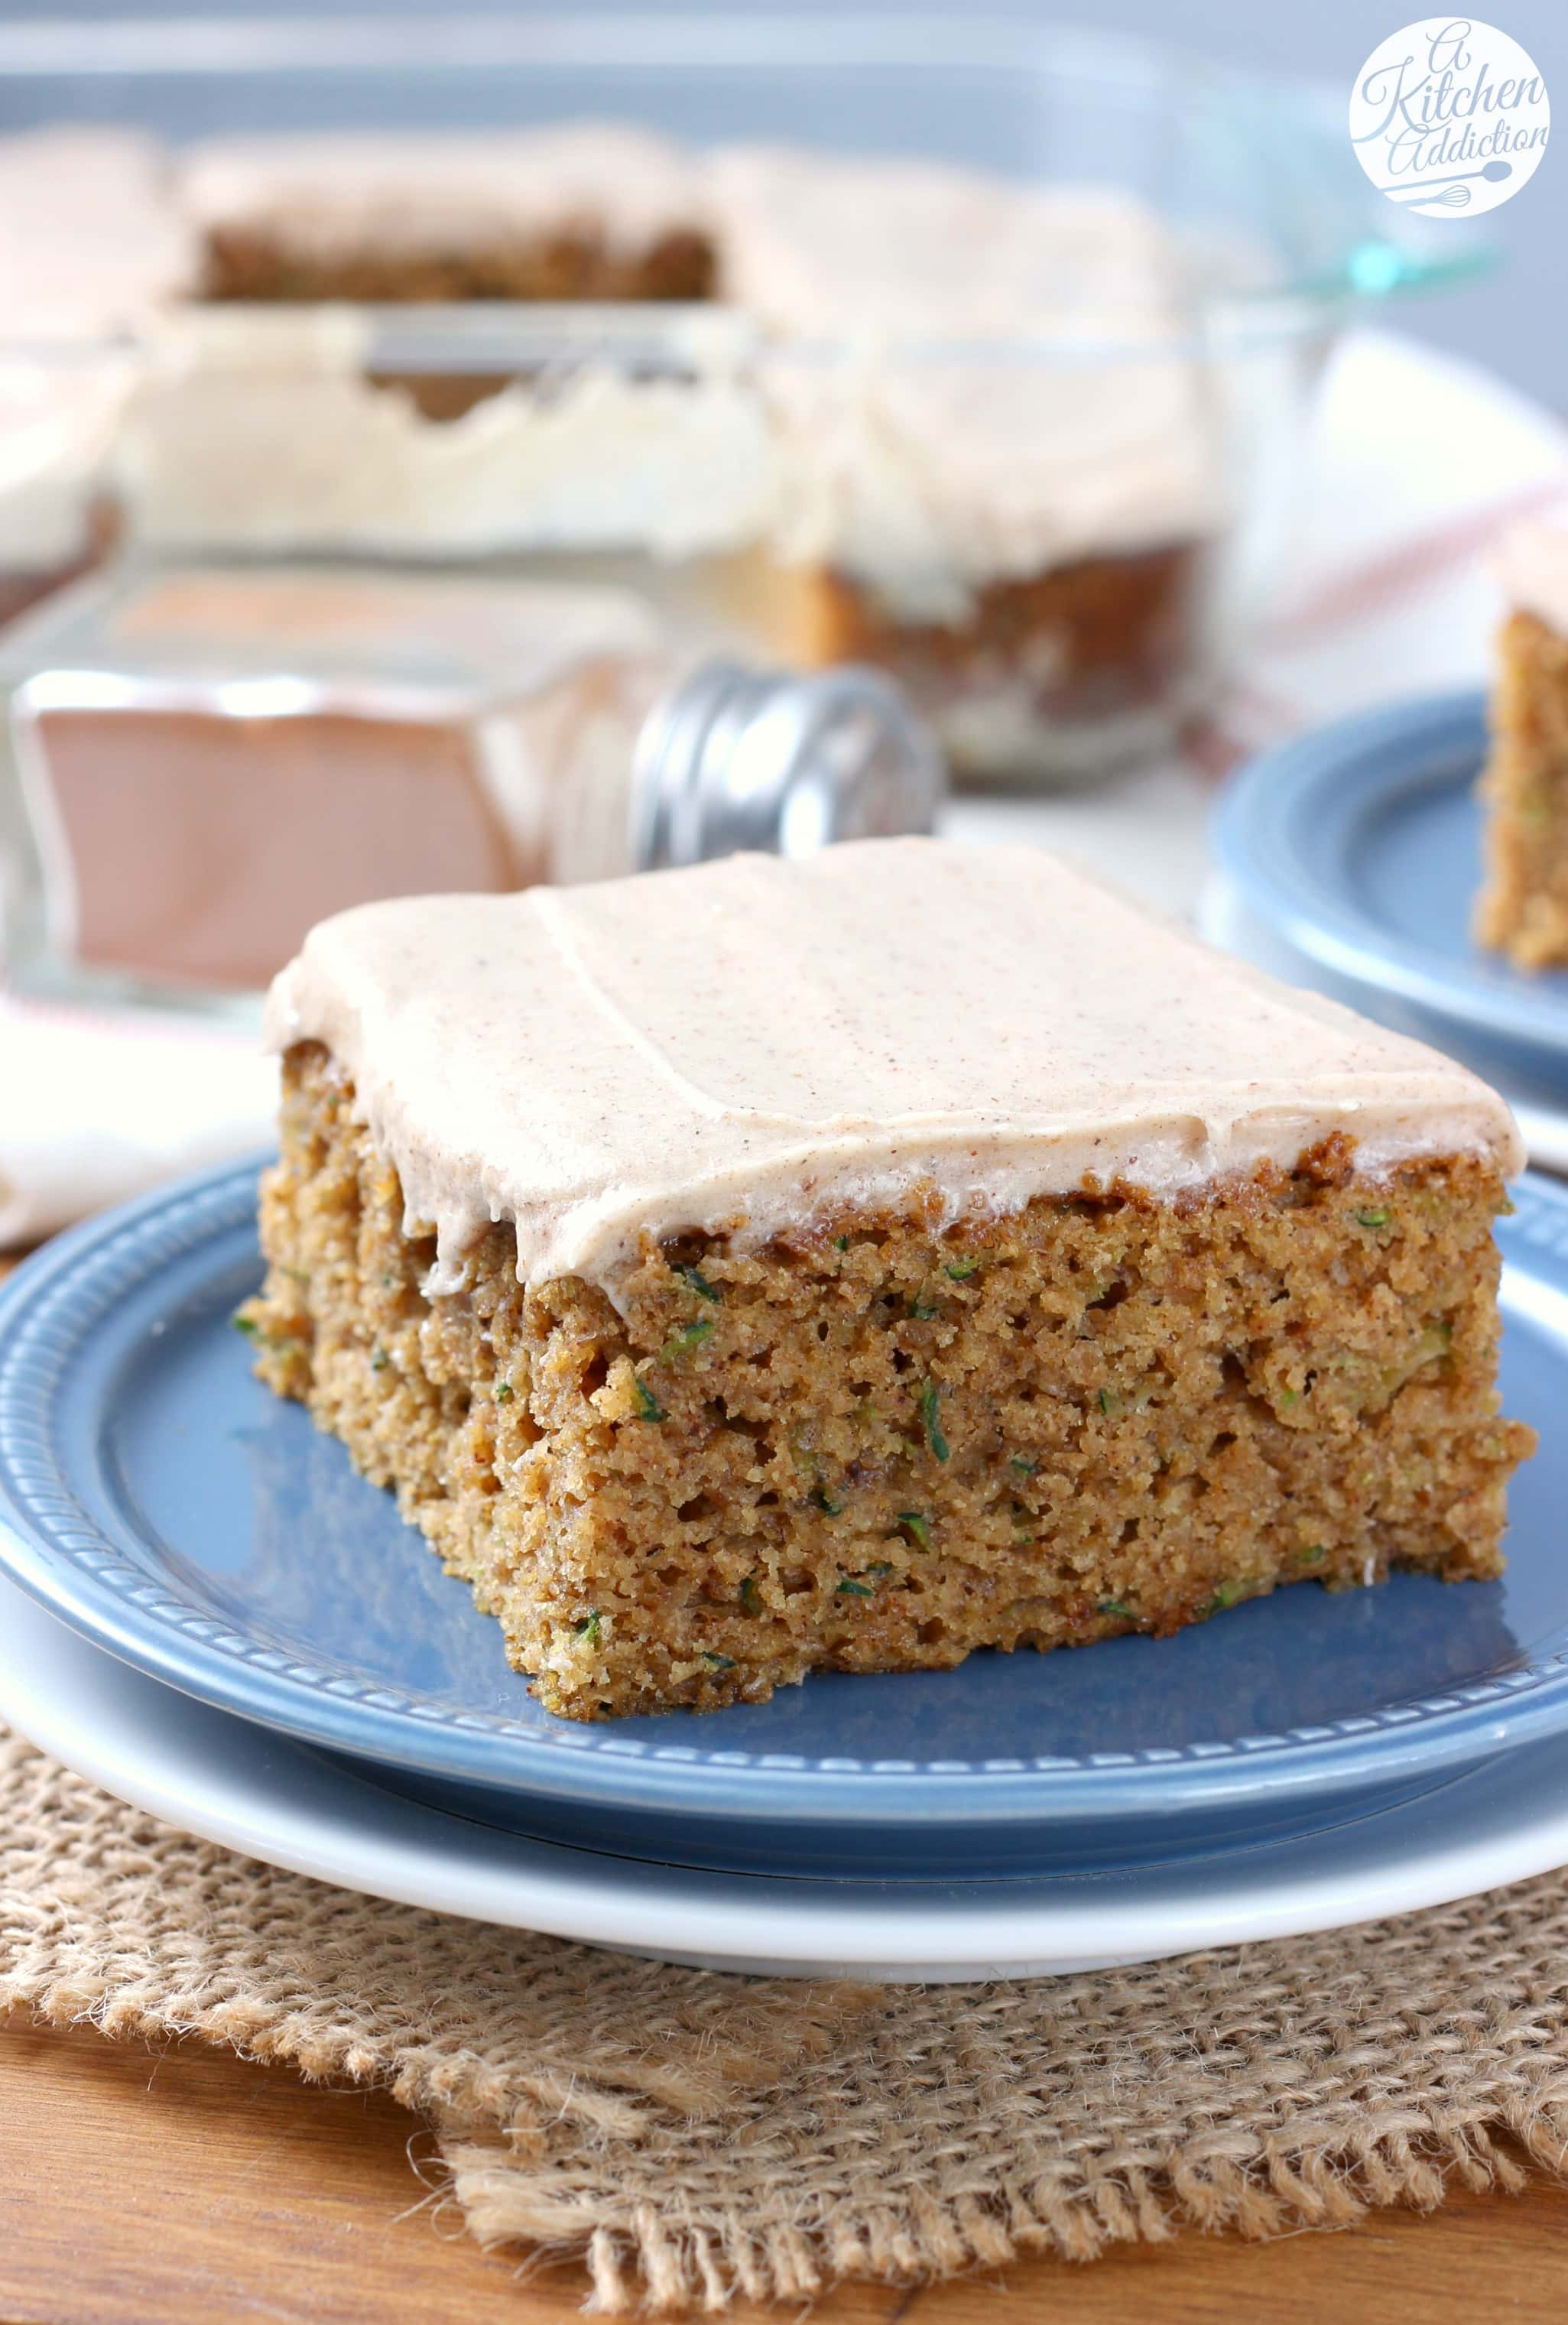 Zucchini Cake with Spiced Cream Cheese Frosting Recipe from A Kitchen Addiction